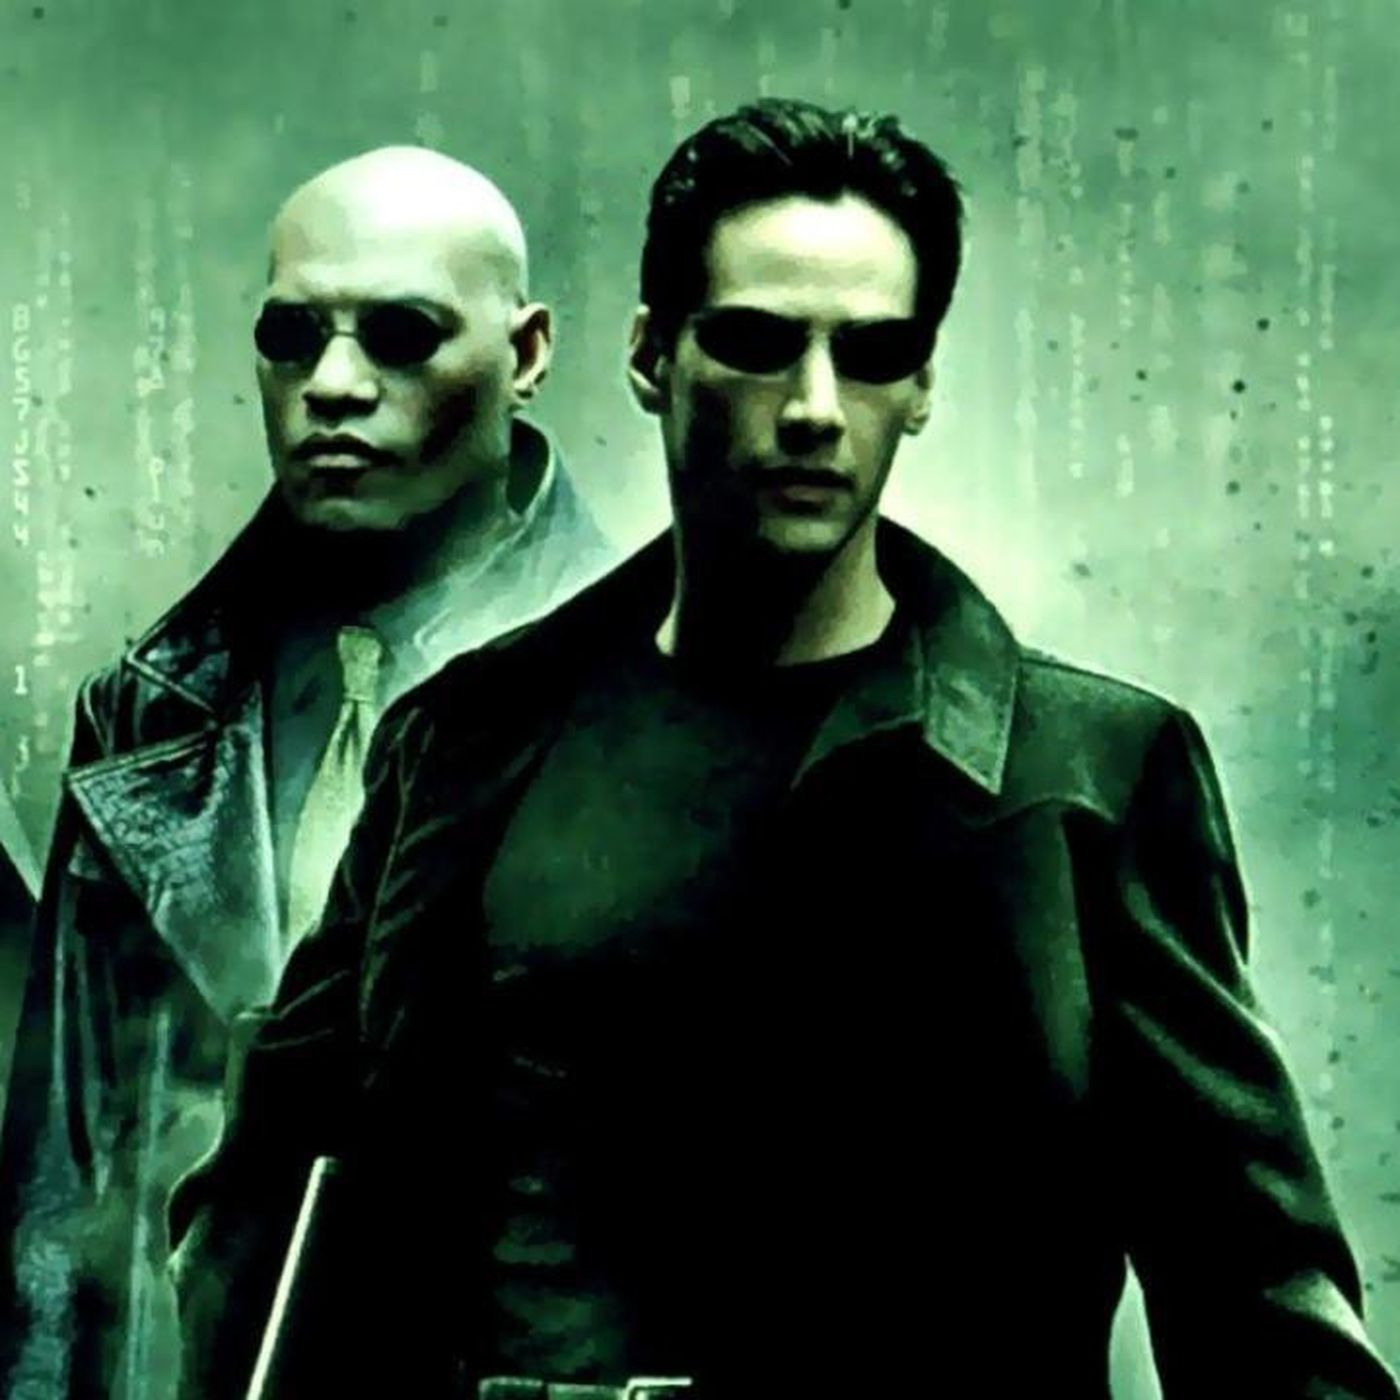 John Wick 3 director says the Wachowskis are working on another Matrix film  - The Verge